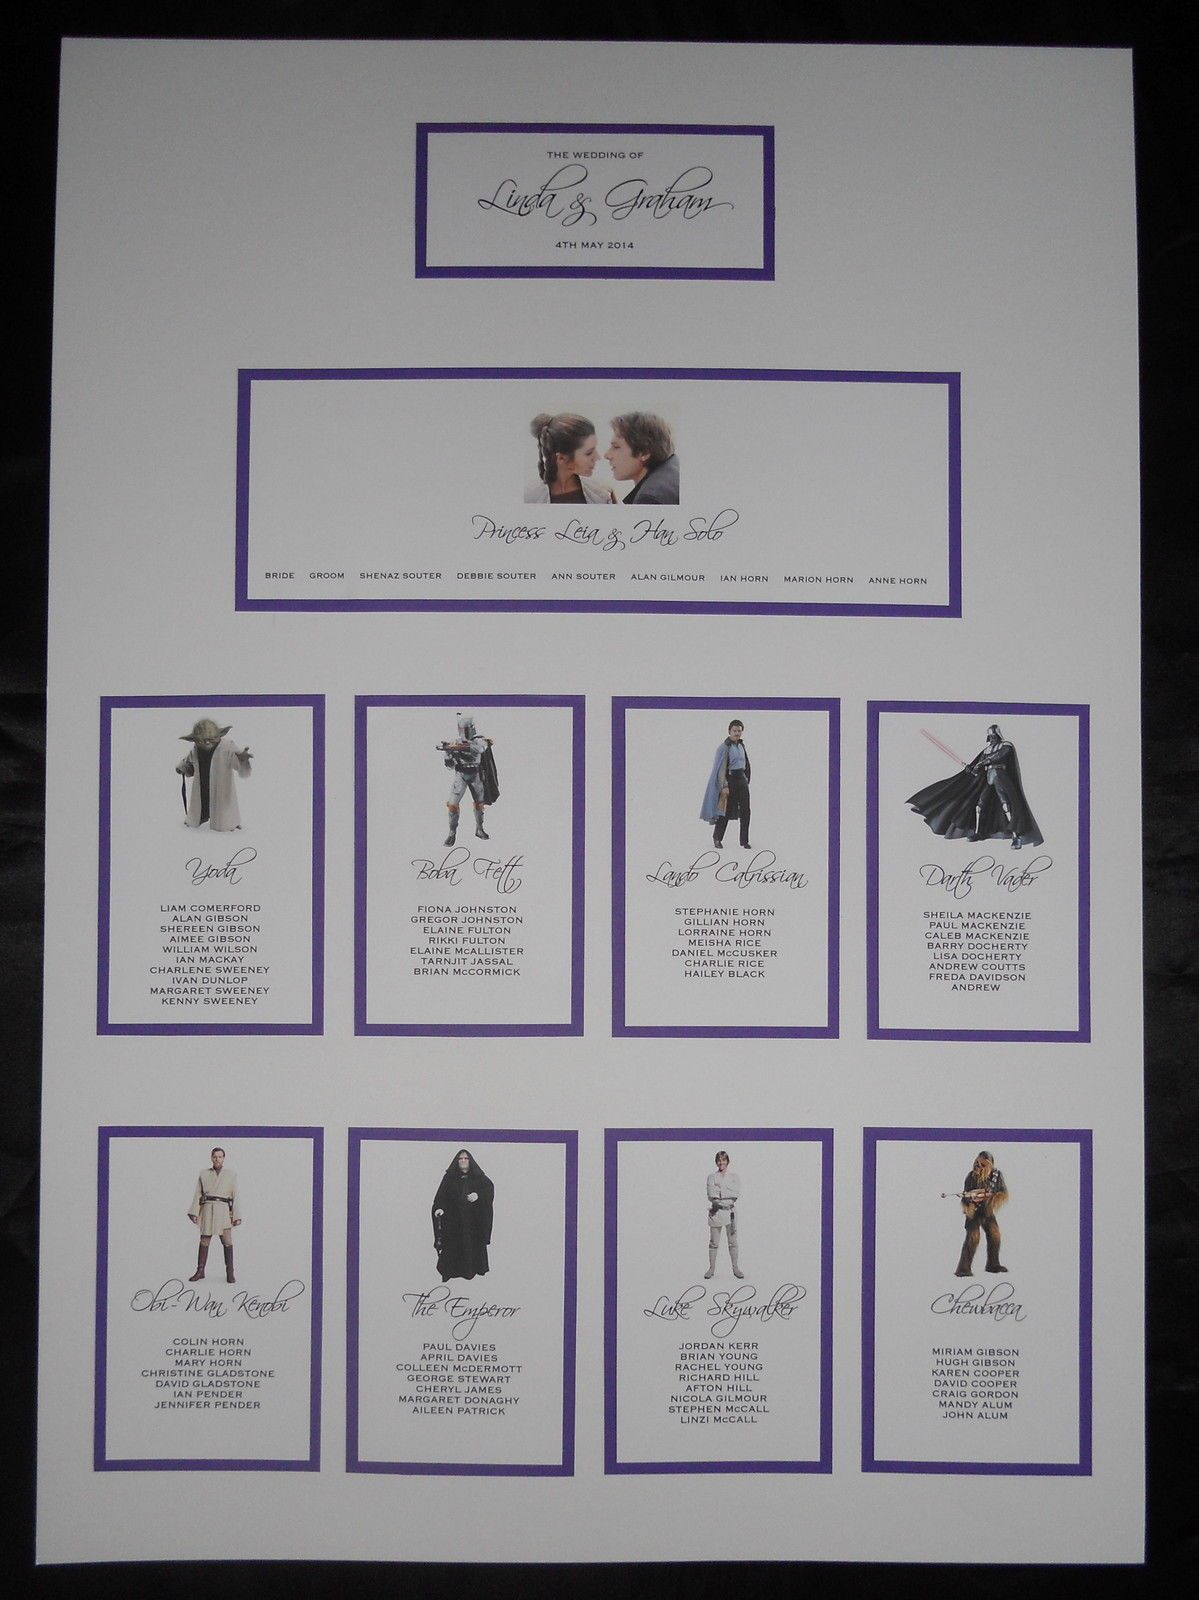 Star wars or any theme wedding table seating plan choice of colours star wars or any theme wedding table seating plan choice of colours designs ebay junglespirit